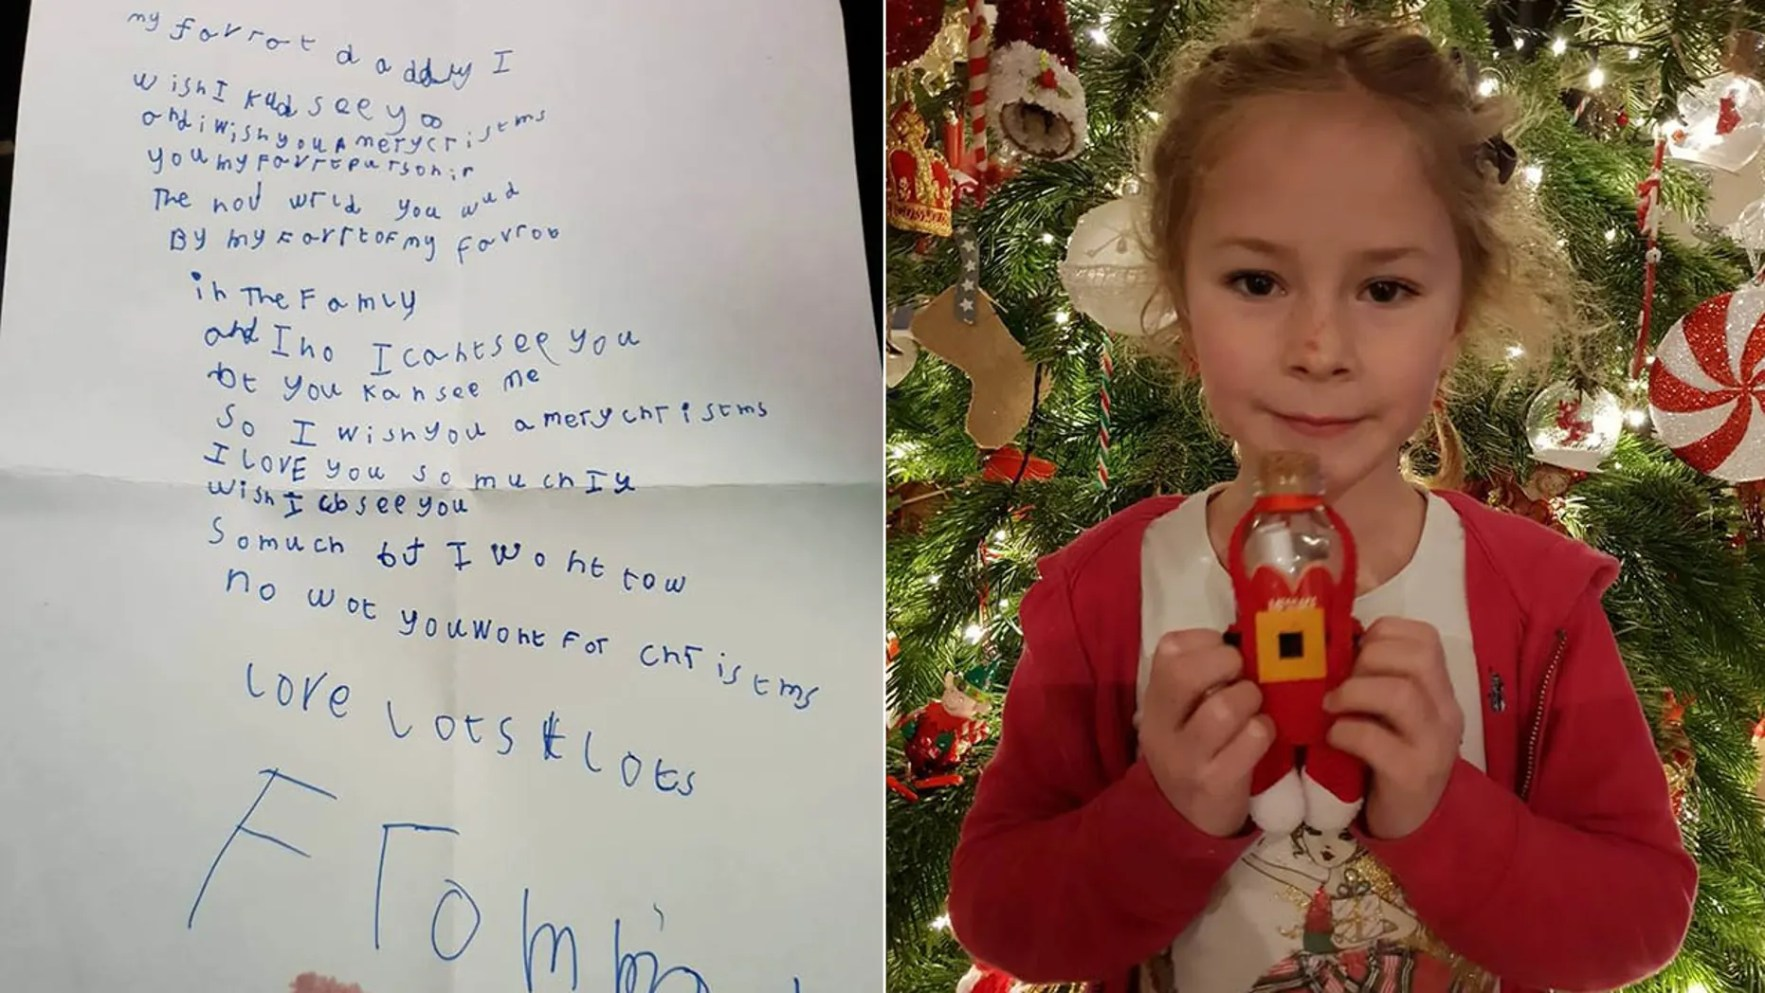 Madison received a letter from the Royal Mail assuring her that the Christmas note to her dad in heaven had been safely delivered.